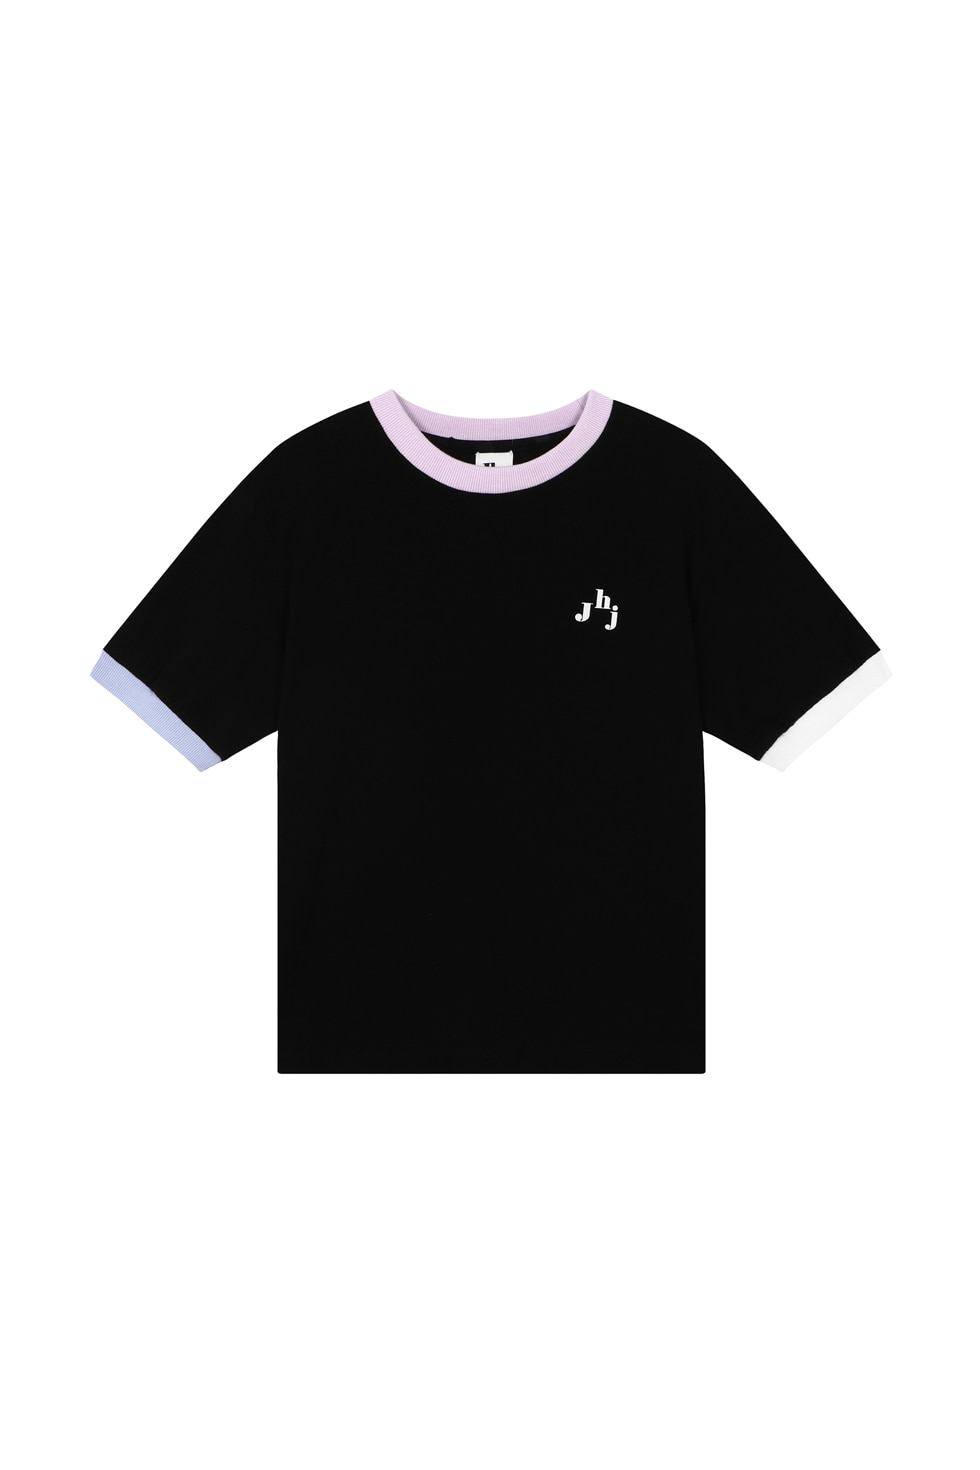 JHZ COLOR BLOCK T-SHIRTS - BLACK